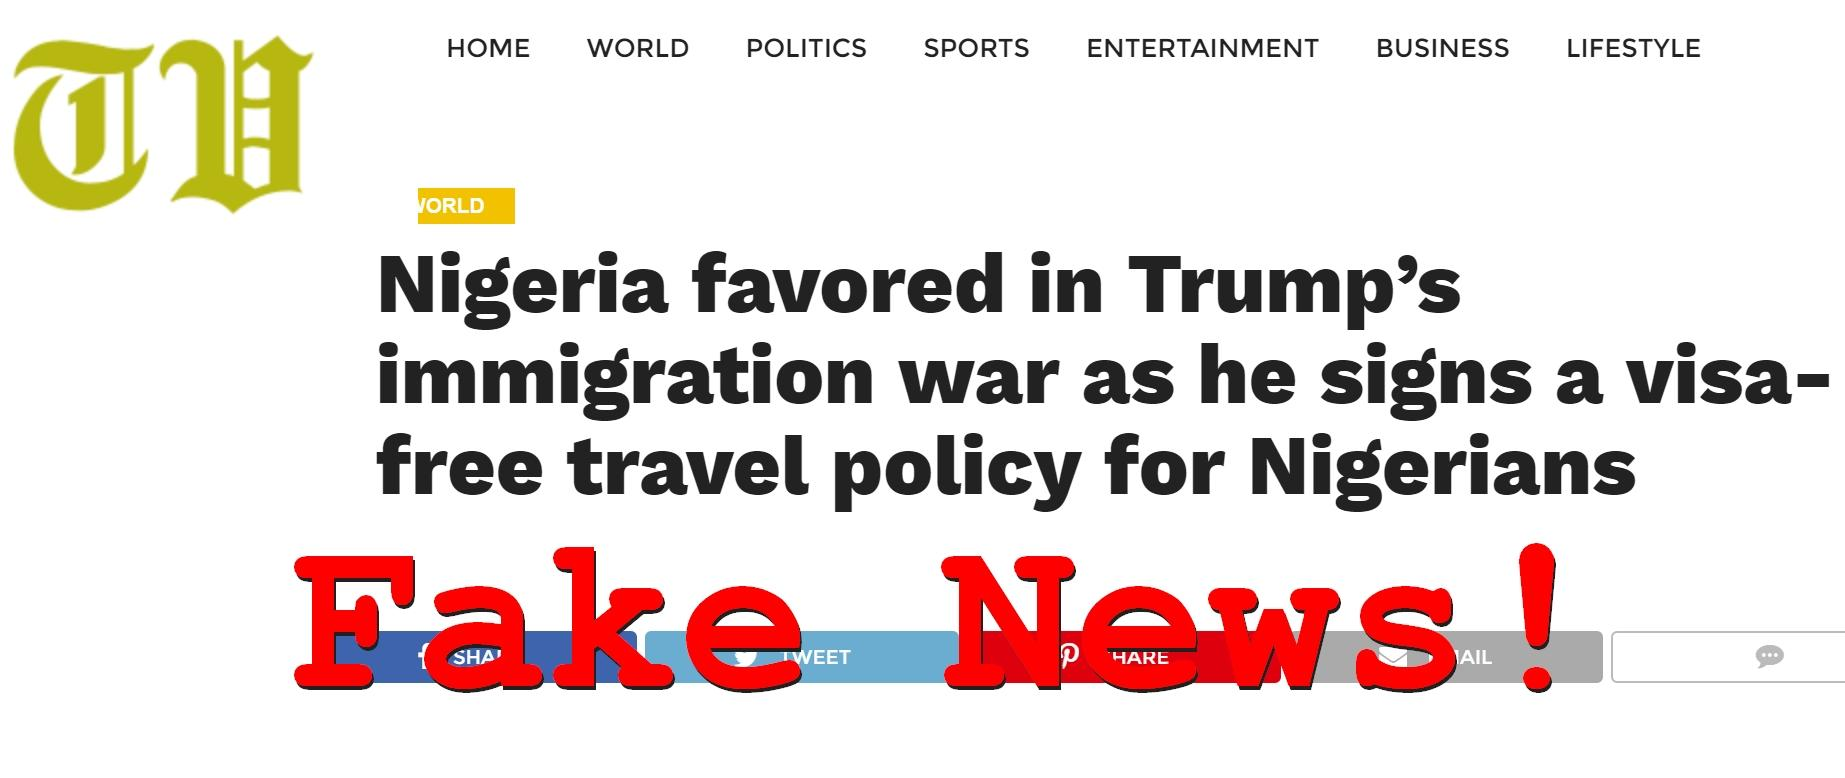 Fake News: Nigeria NOT Favored in Trump's Immigration War; Did NOT Sign Visa-free Travel Policy for Nigerians